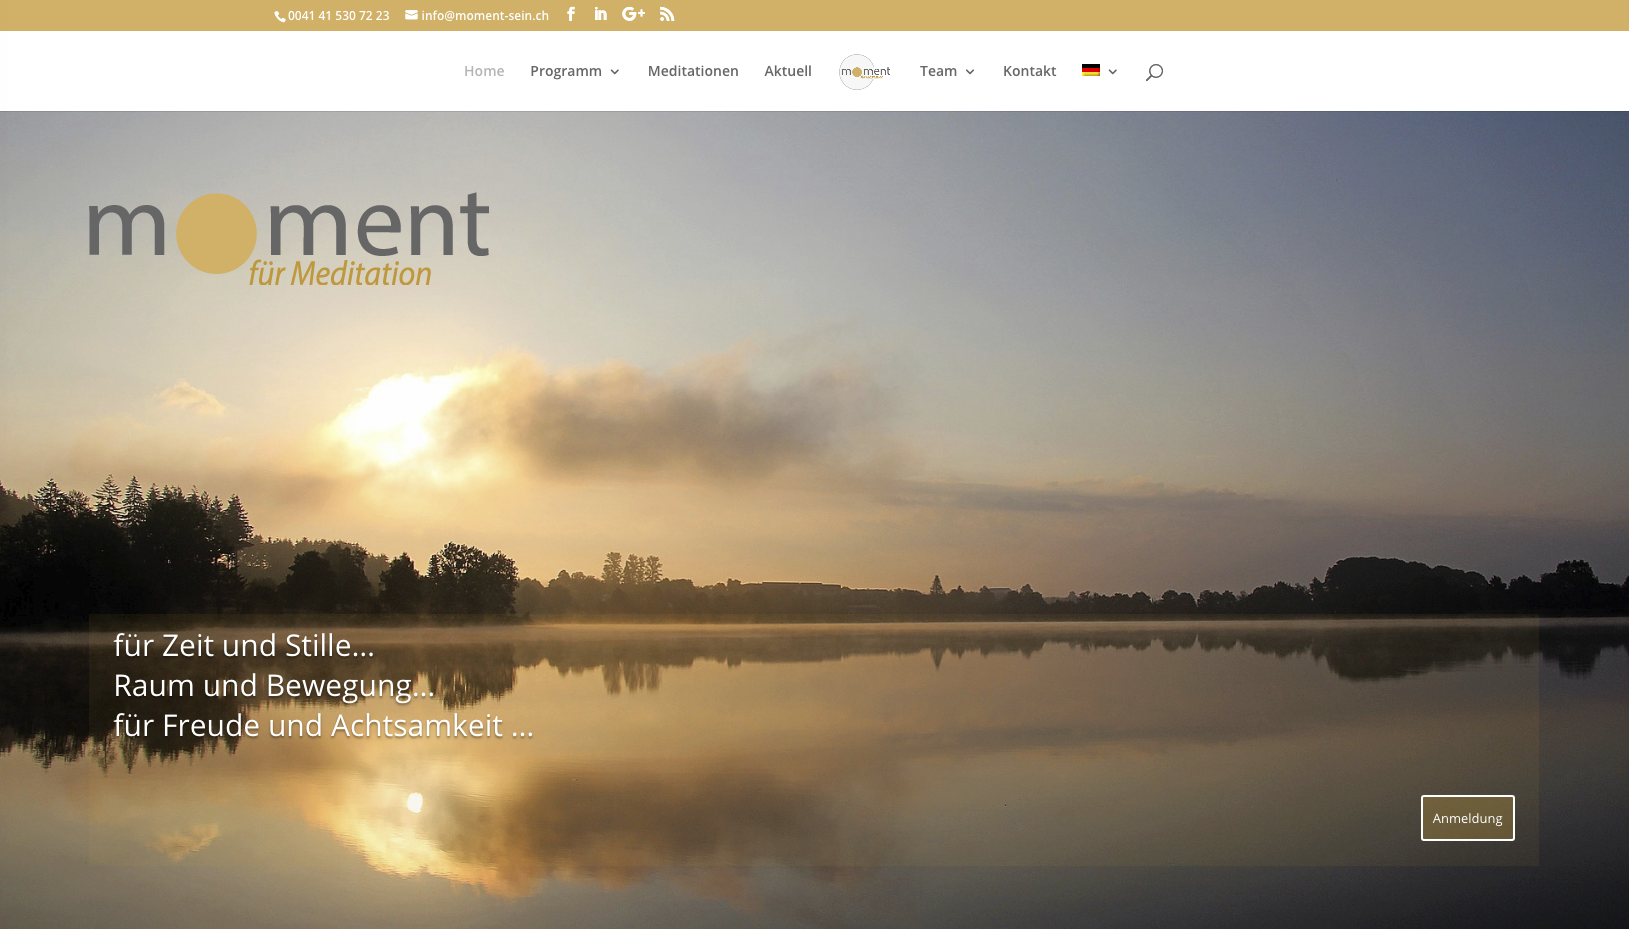 digital-designer.ch-Printscreen Webdesign meditationszentrum Zug